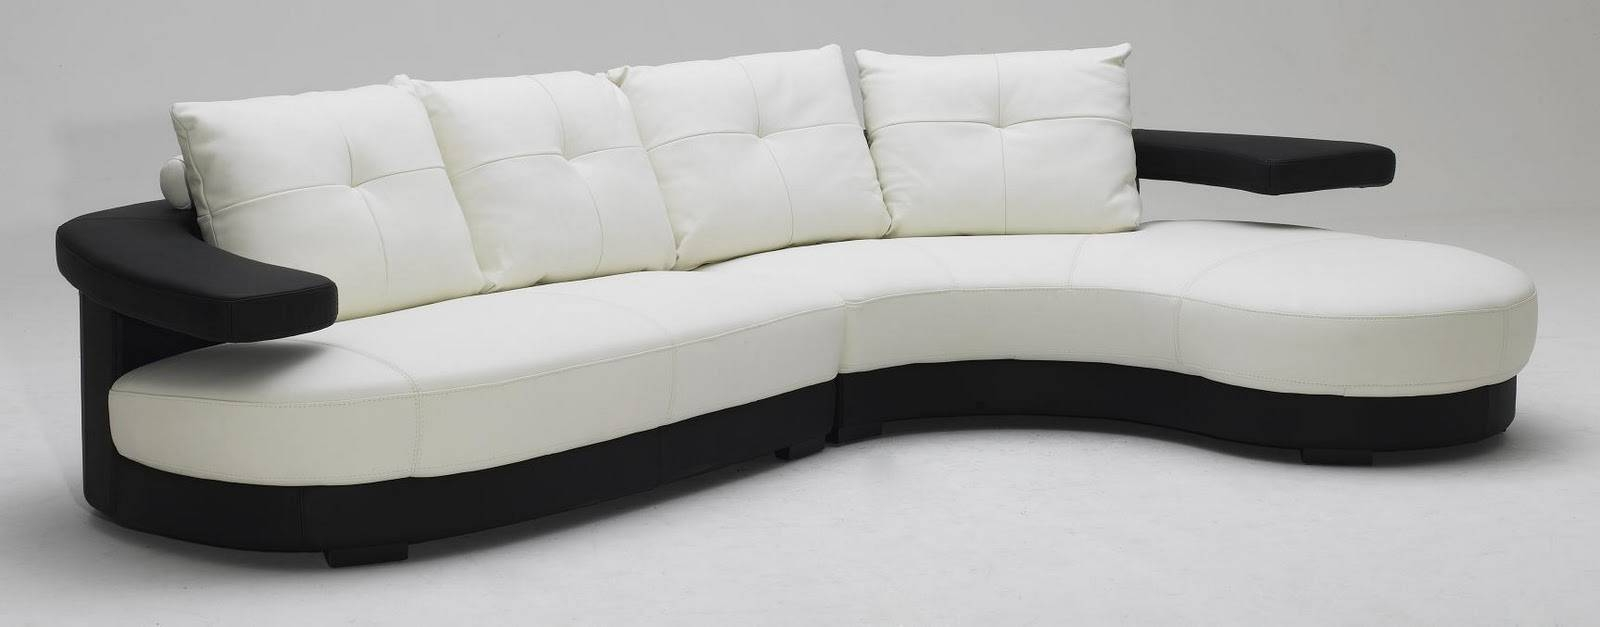 Trendy Modern Sofas And Chairs Luxury Marvelous 2 Photo Of Ideas within Contemporary Sofas And Chairs (Image 15 of 15)